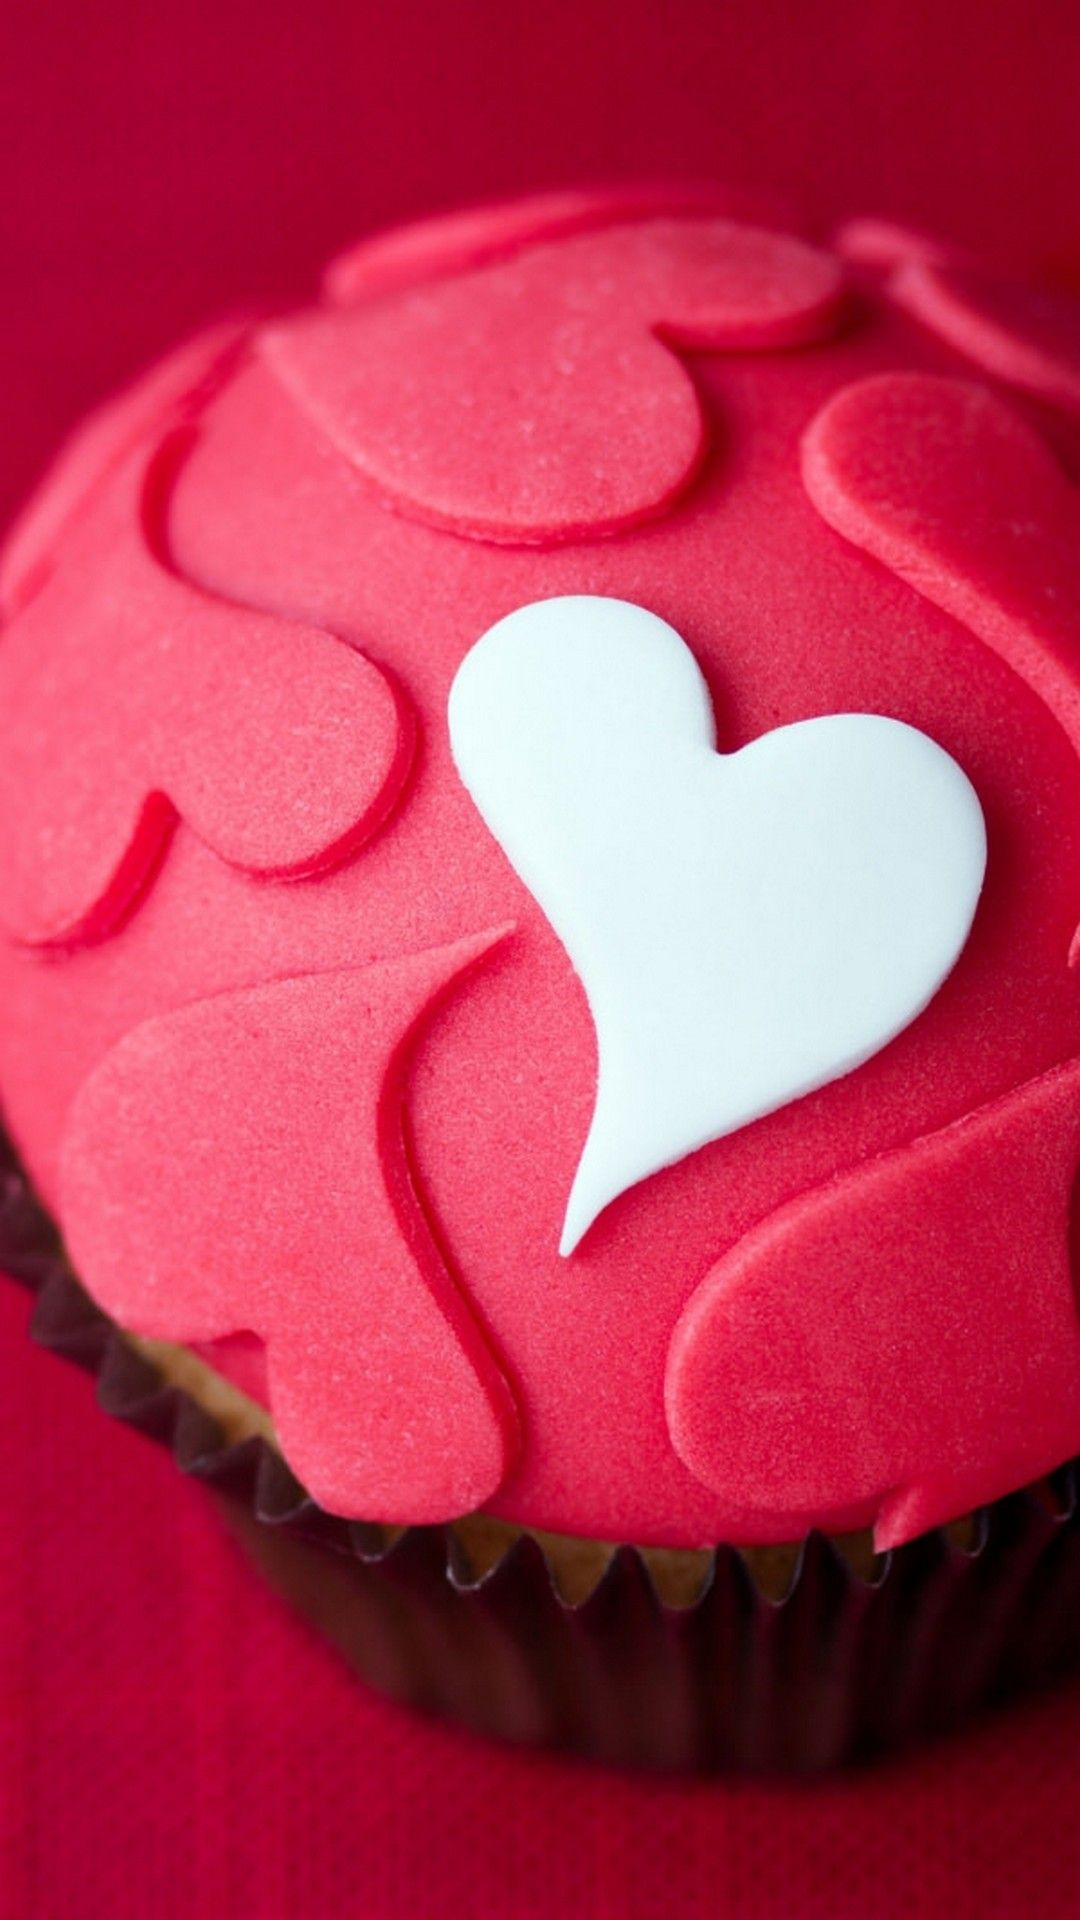 Cupcake Wallpaper Cute Girly For Android Best Hd Wallpapers